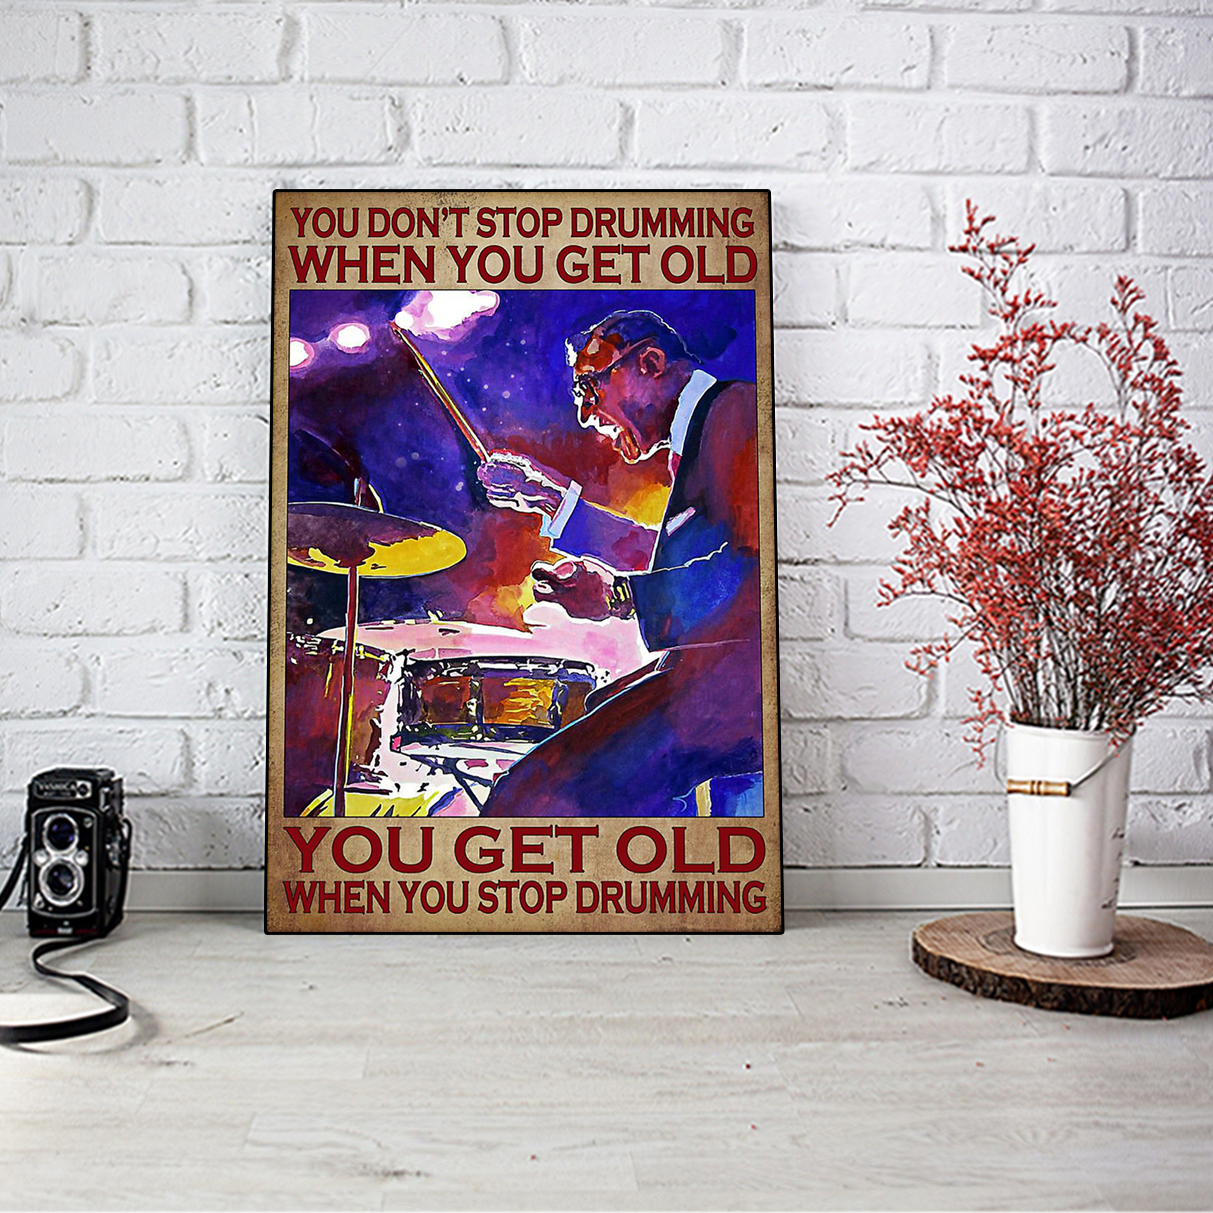 You don't stop drumming when you get old poster A2